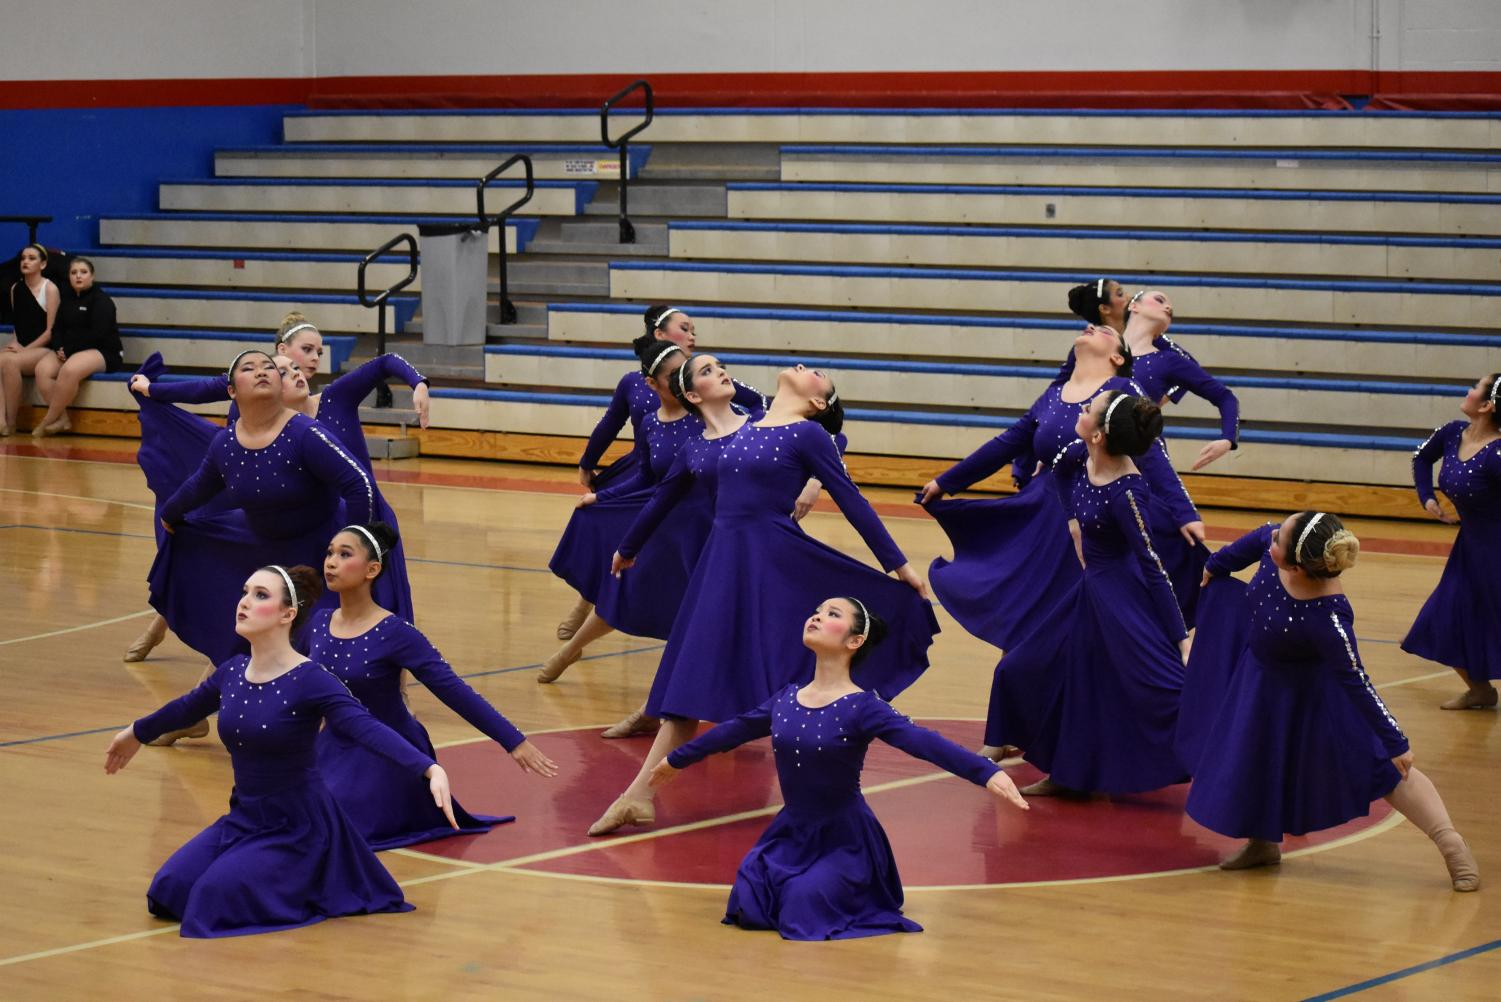 The HI-C's doing their routine at the Metro dance competition. Many dance team members placed in exhibition.